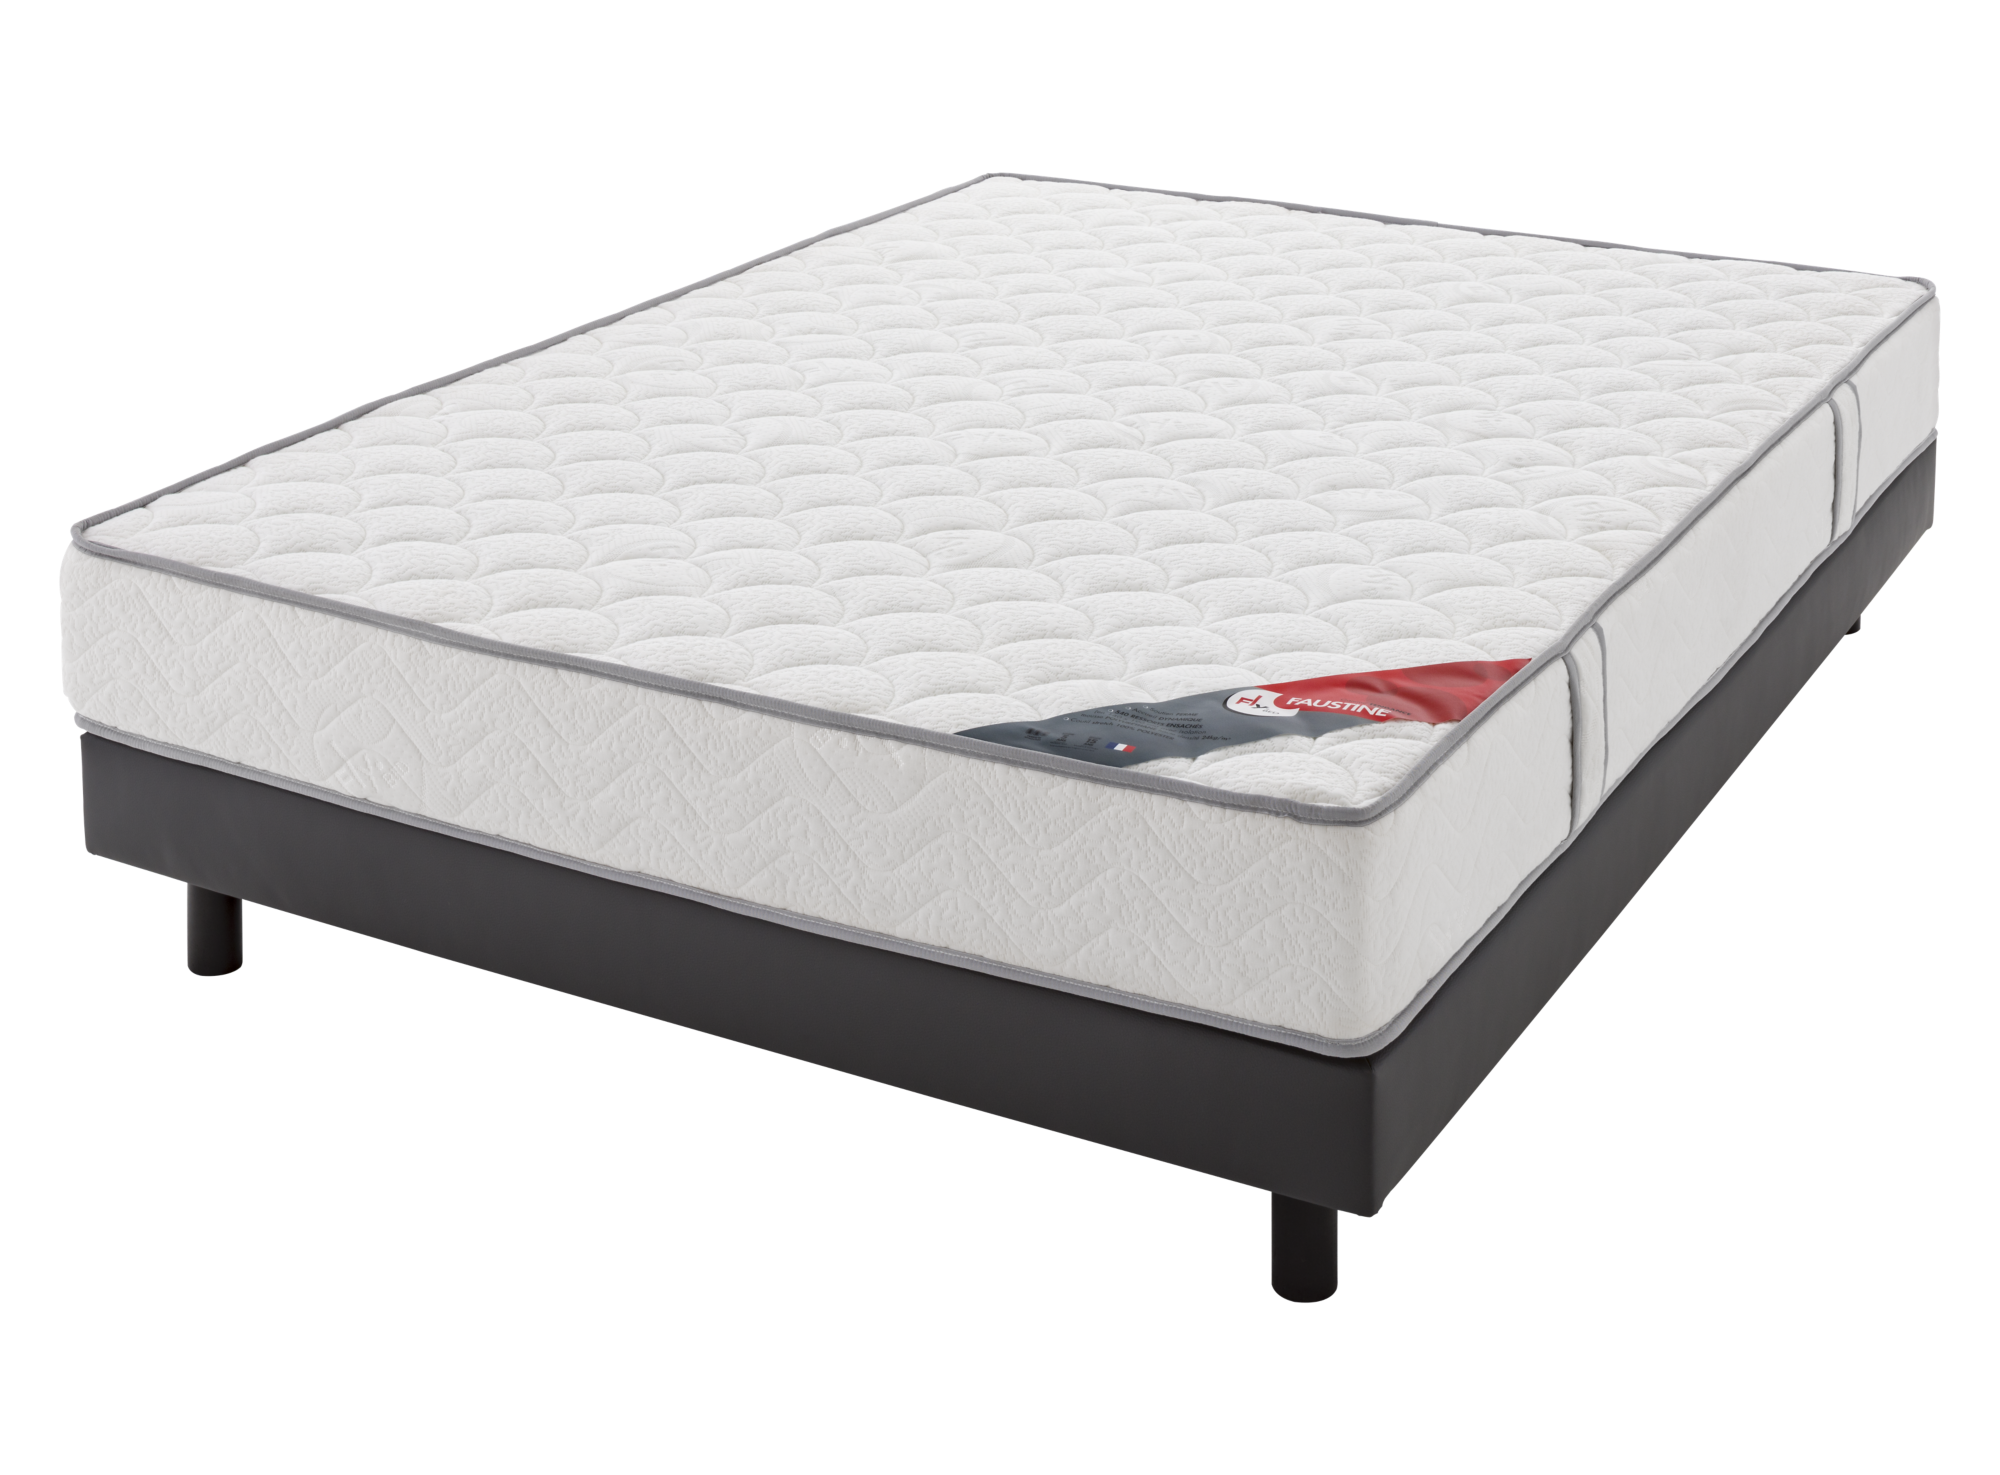 Matelas faustine / flybed confort ferme ame: 540 ressorts ensaches (e ...